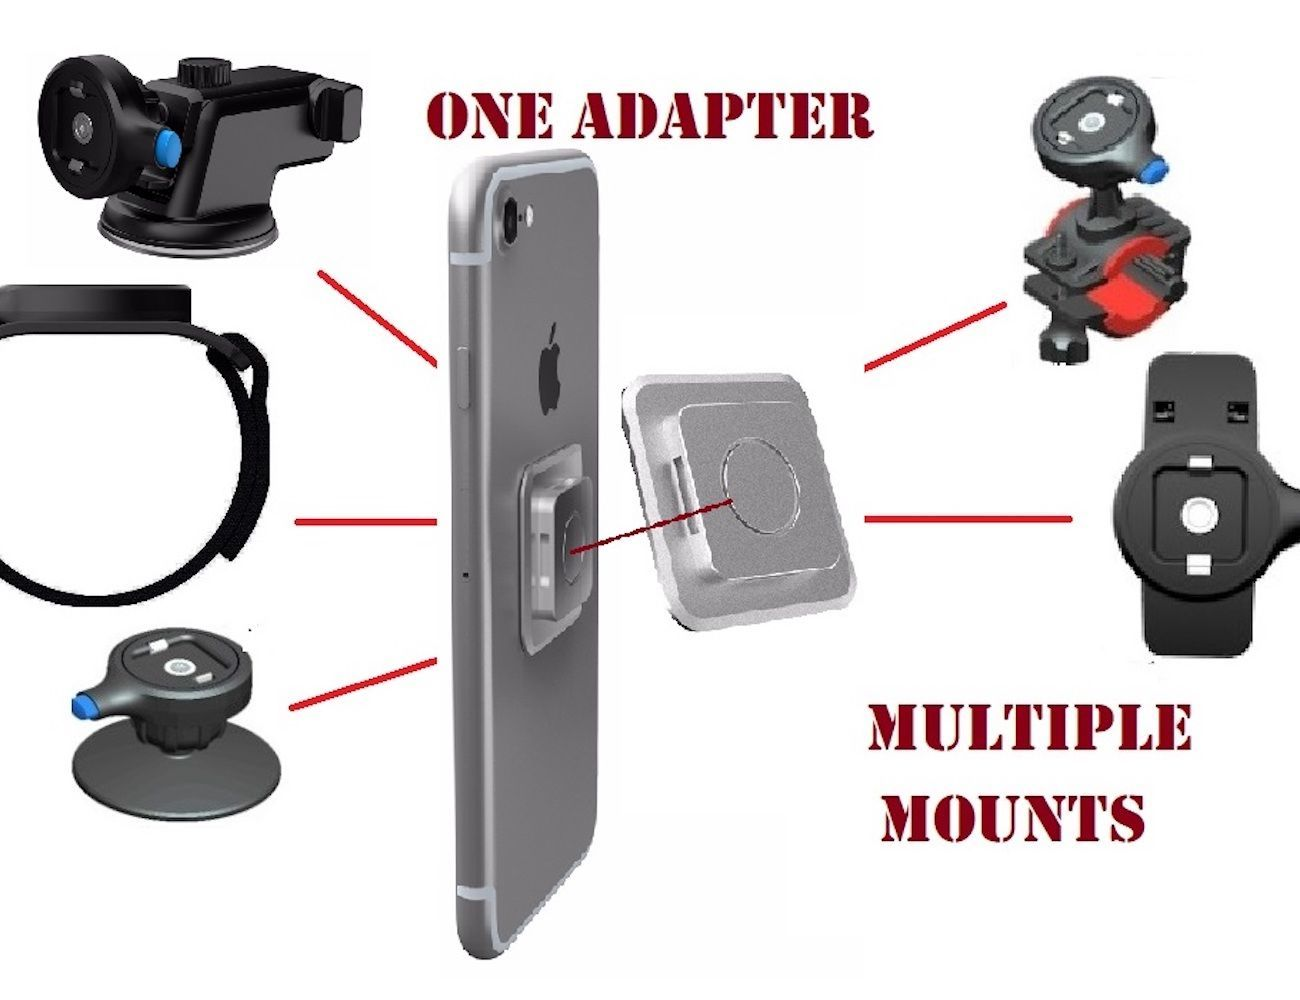 Clipster Universal Smartphone Mounting System